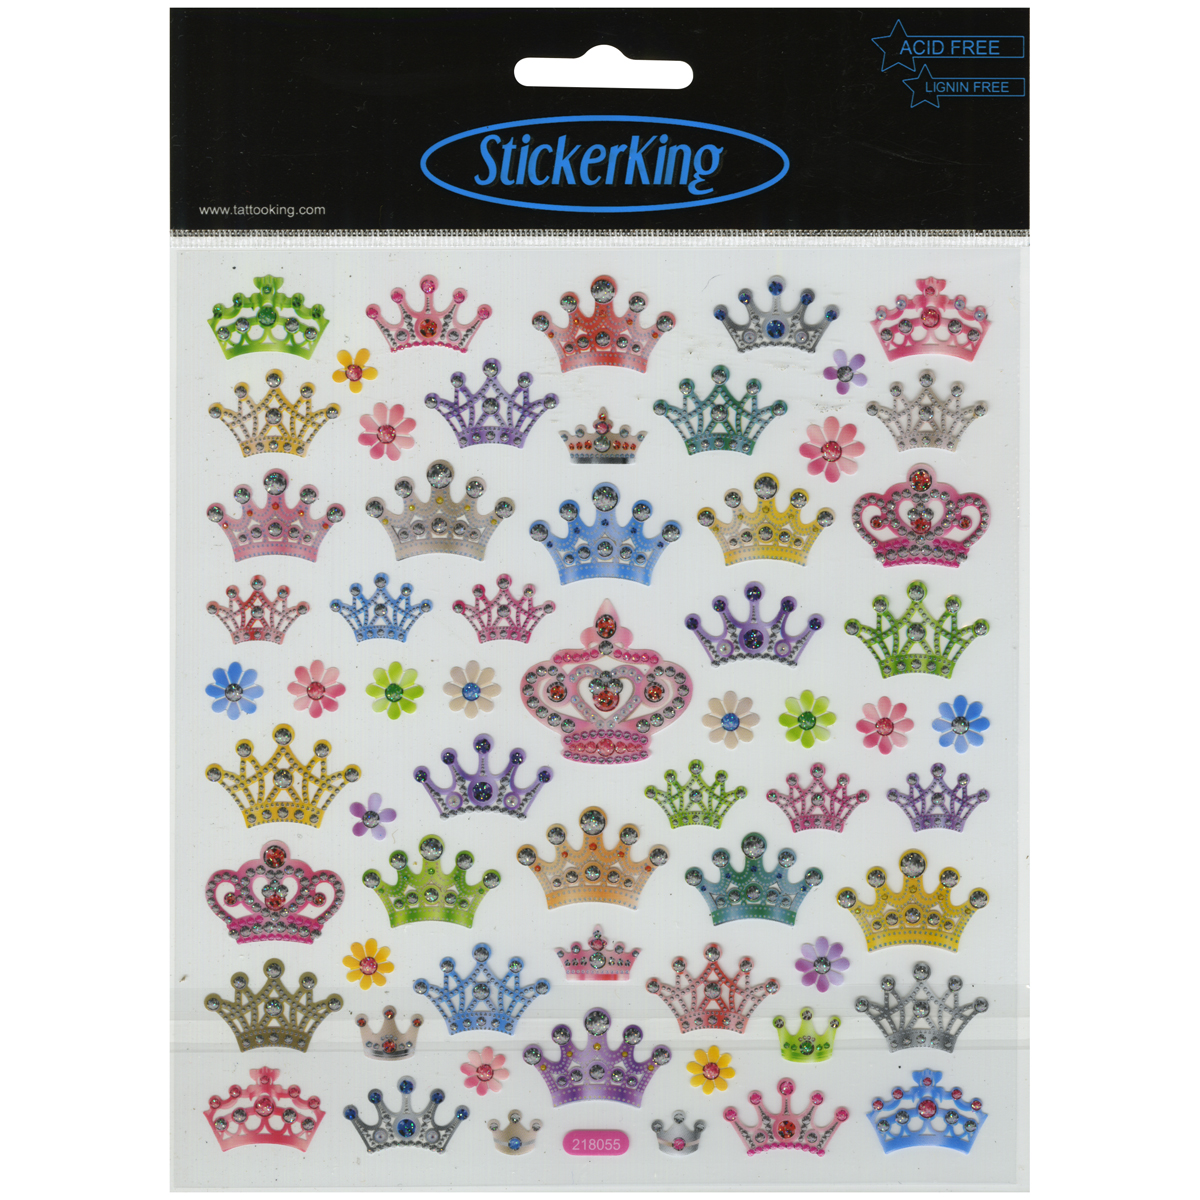 Multicolored Stickers-Bejeweled Crowns